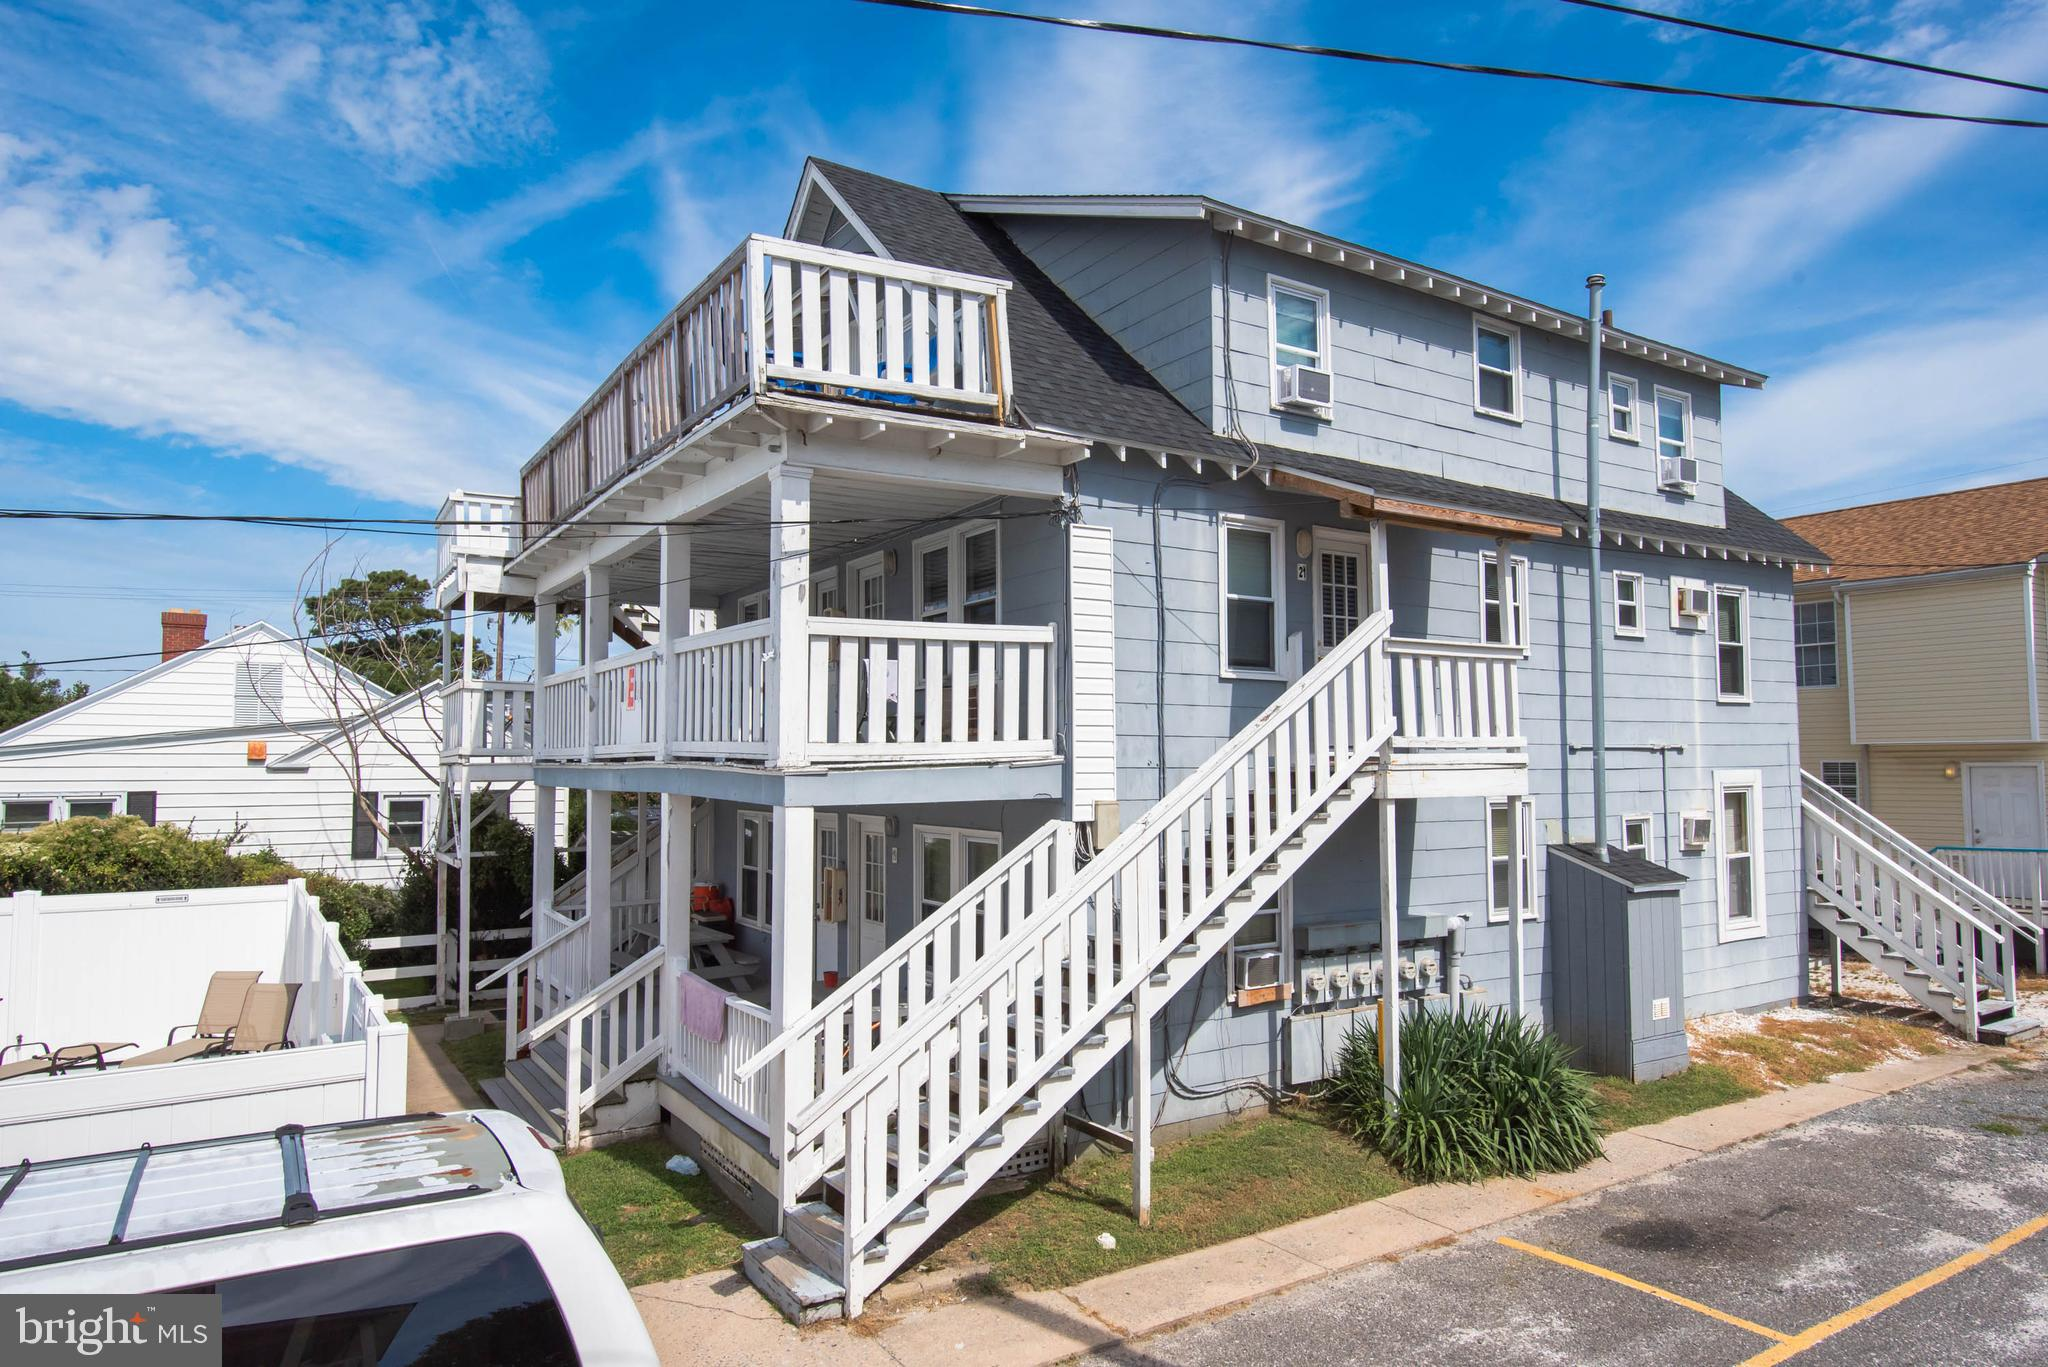 Recently remodeled one bedroom unit just two blocks to beach and boardwalk! This adorable condo has been recently painted, newer cabinets, remodeled bath, new a/c in bedroom and more. Sleeps 6 comfortably. Deck overlooks the large community pool. Great location at a great price. Don't miss this opportunity!